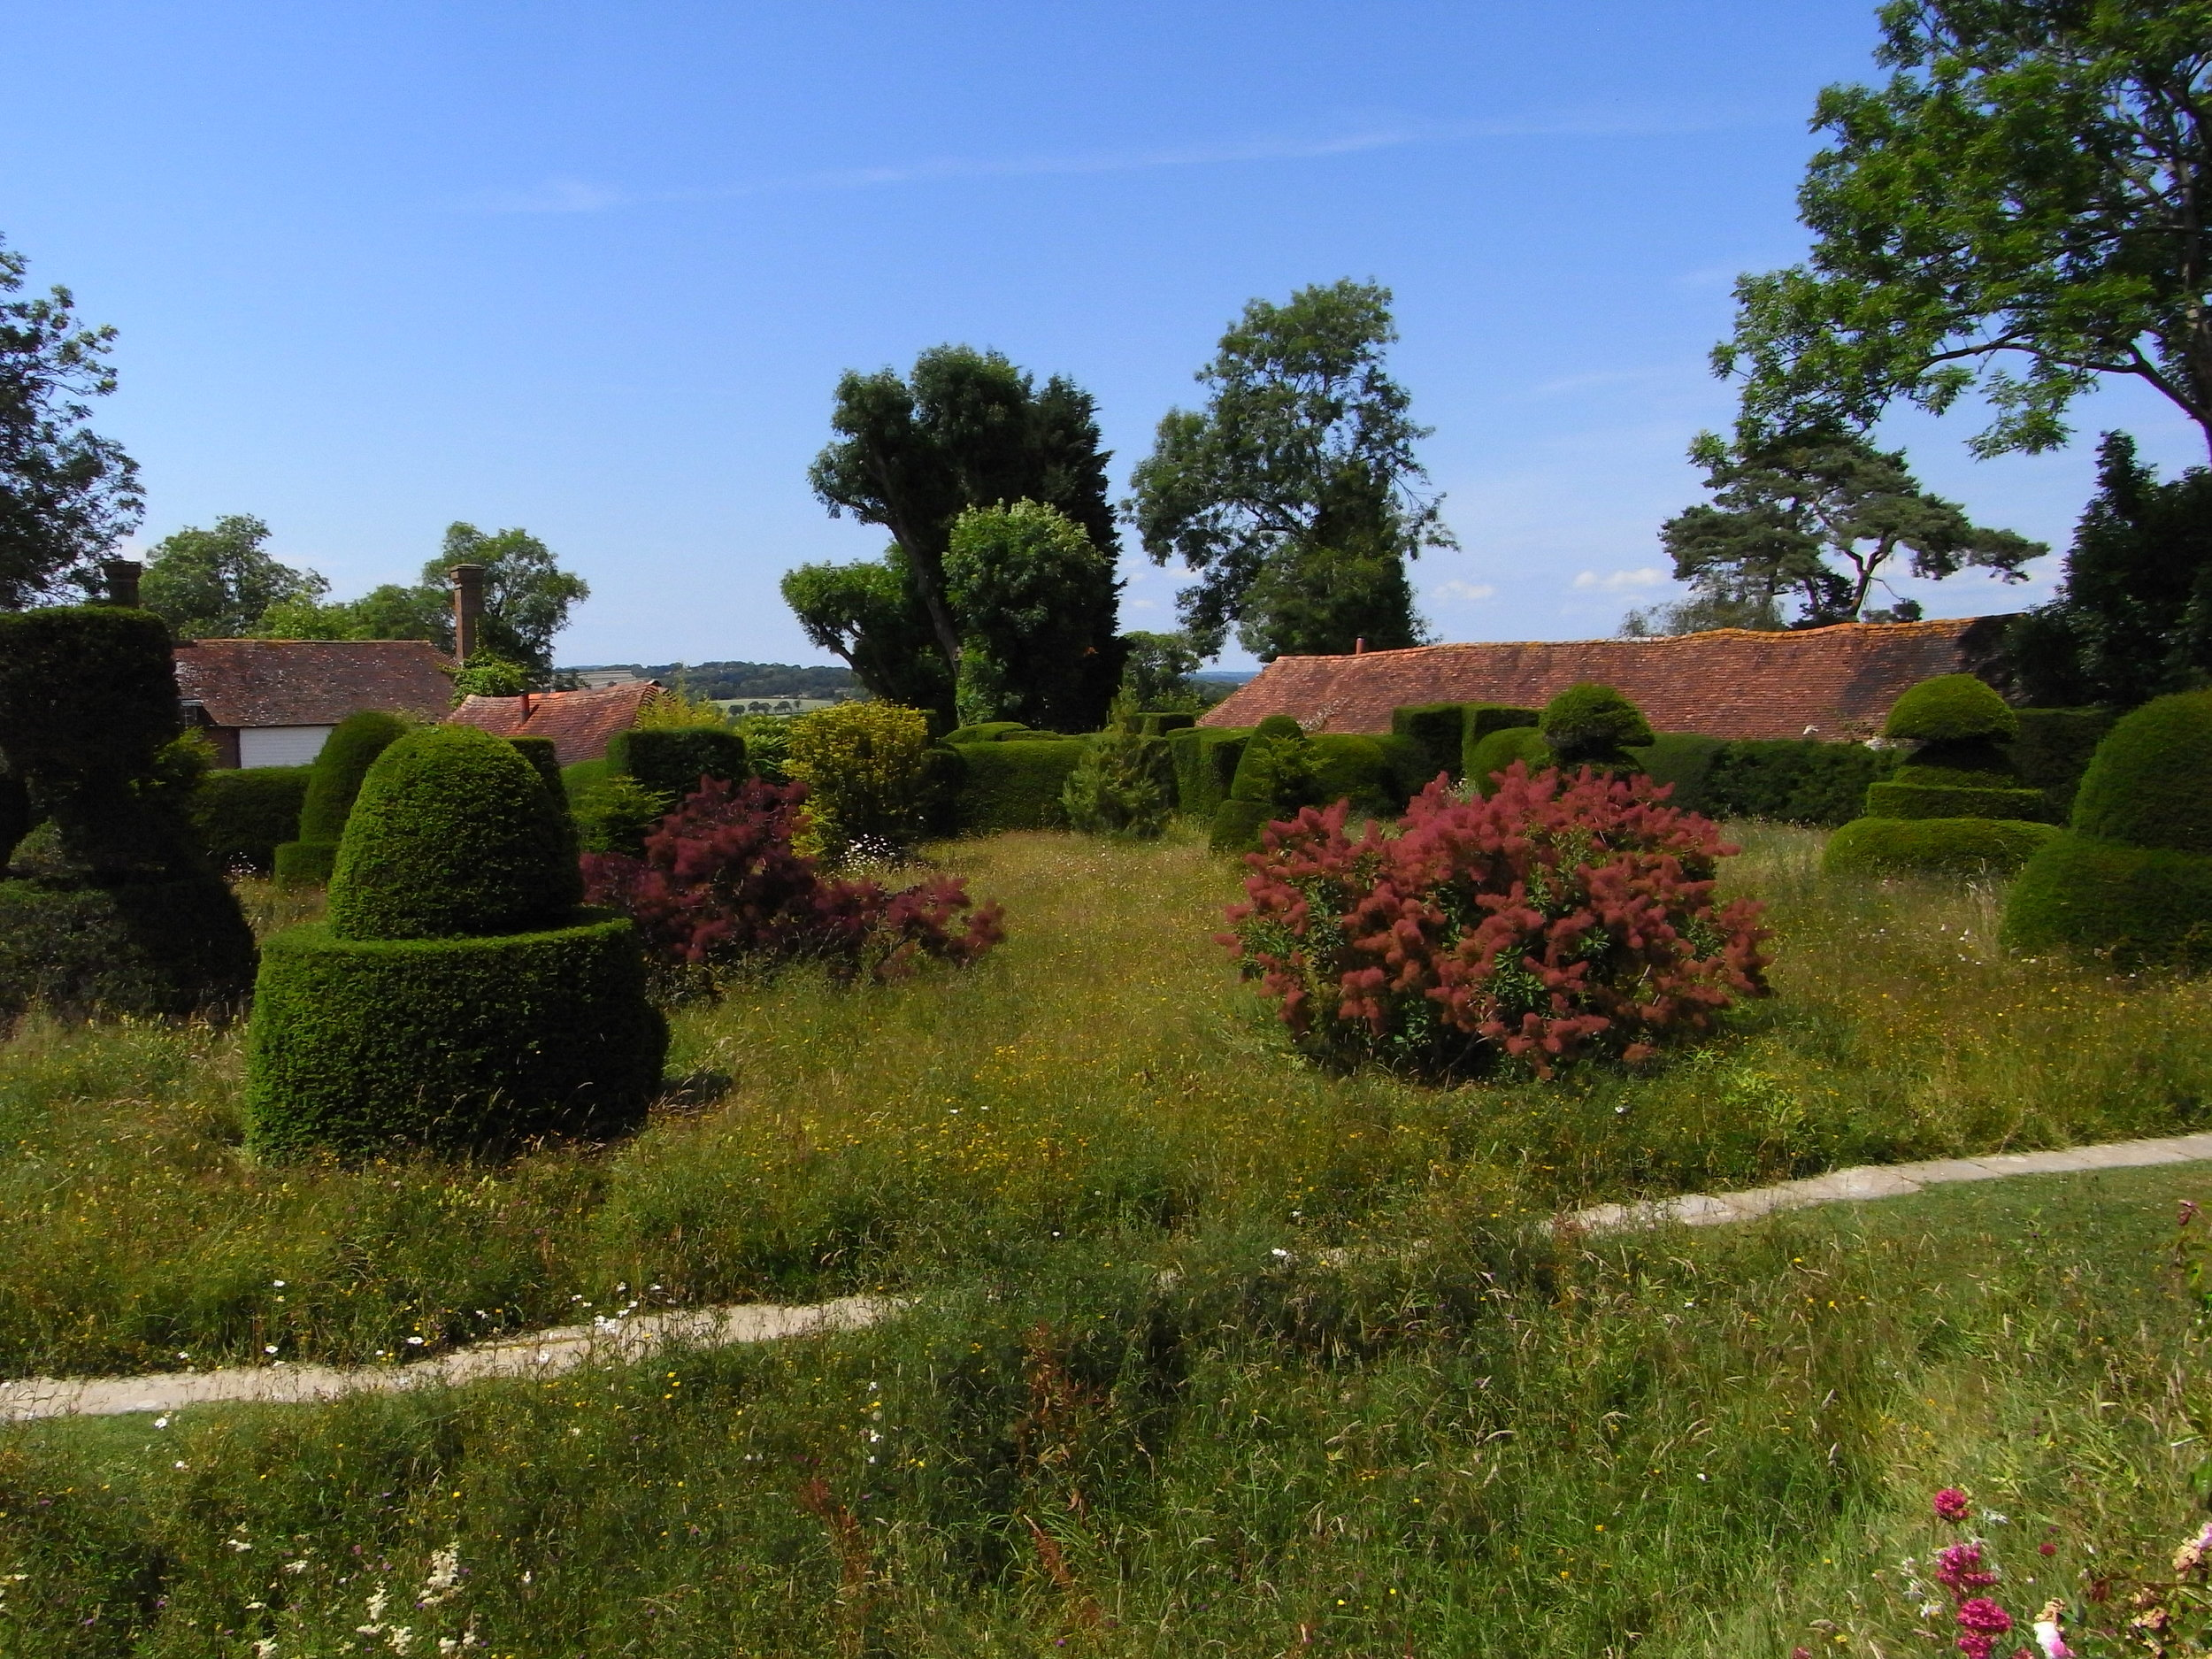 Yew Topiary, Cotiinus and a Meadow Combined at Great Dixter.   Image: Lorraine Young/ Verve Garden Design